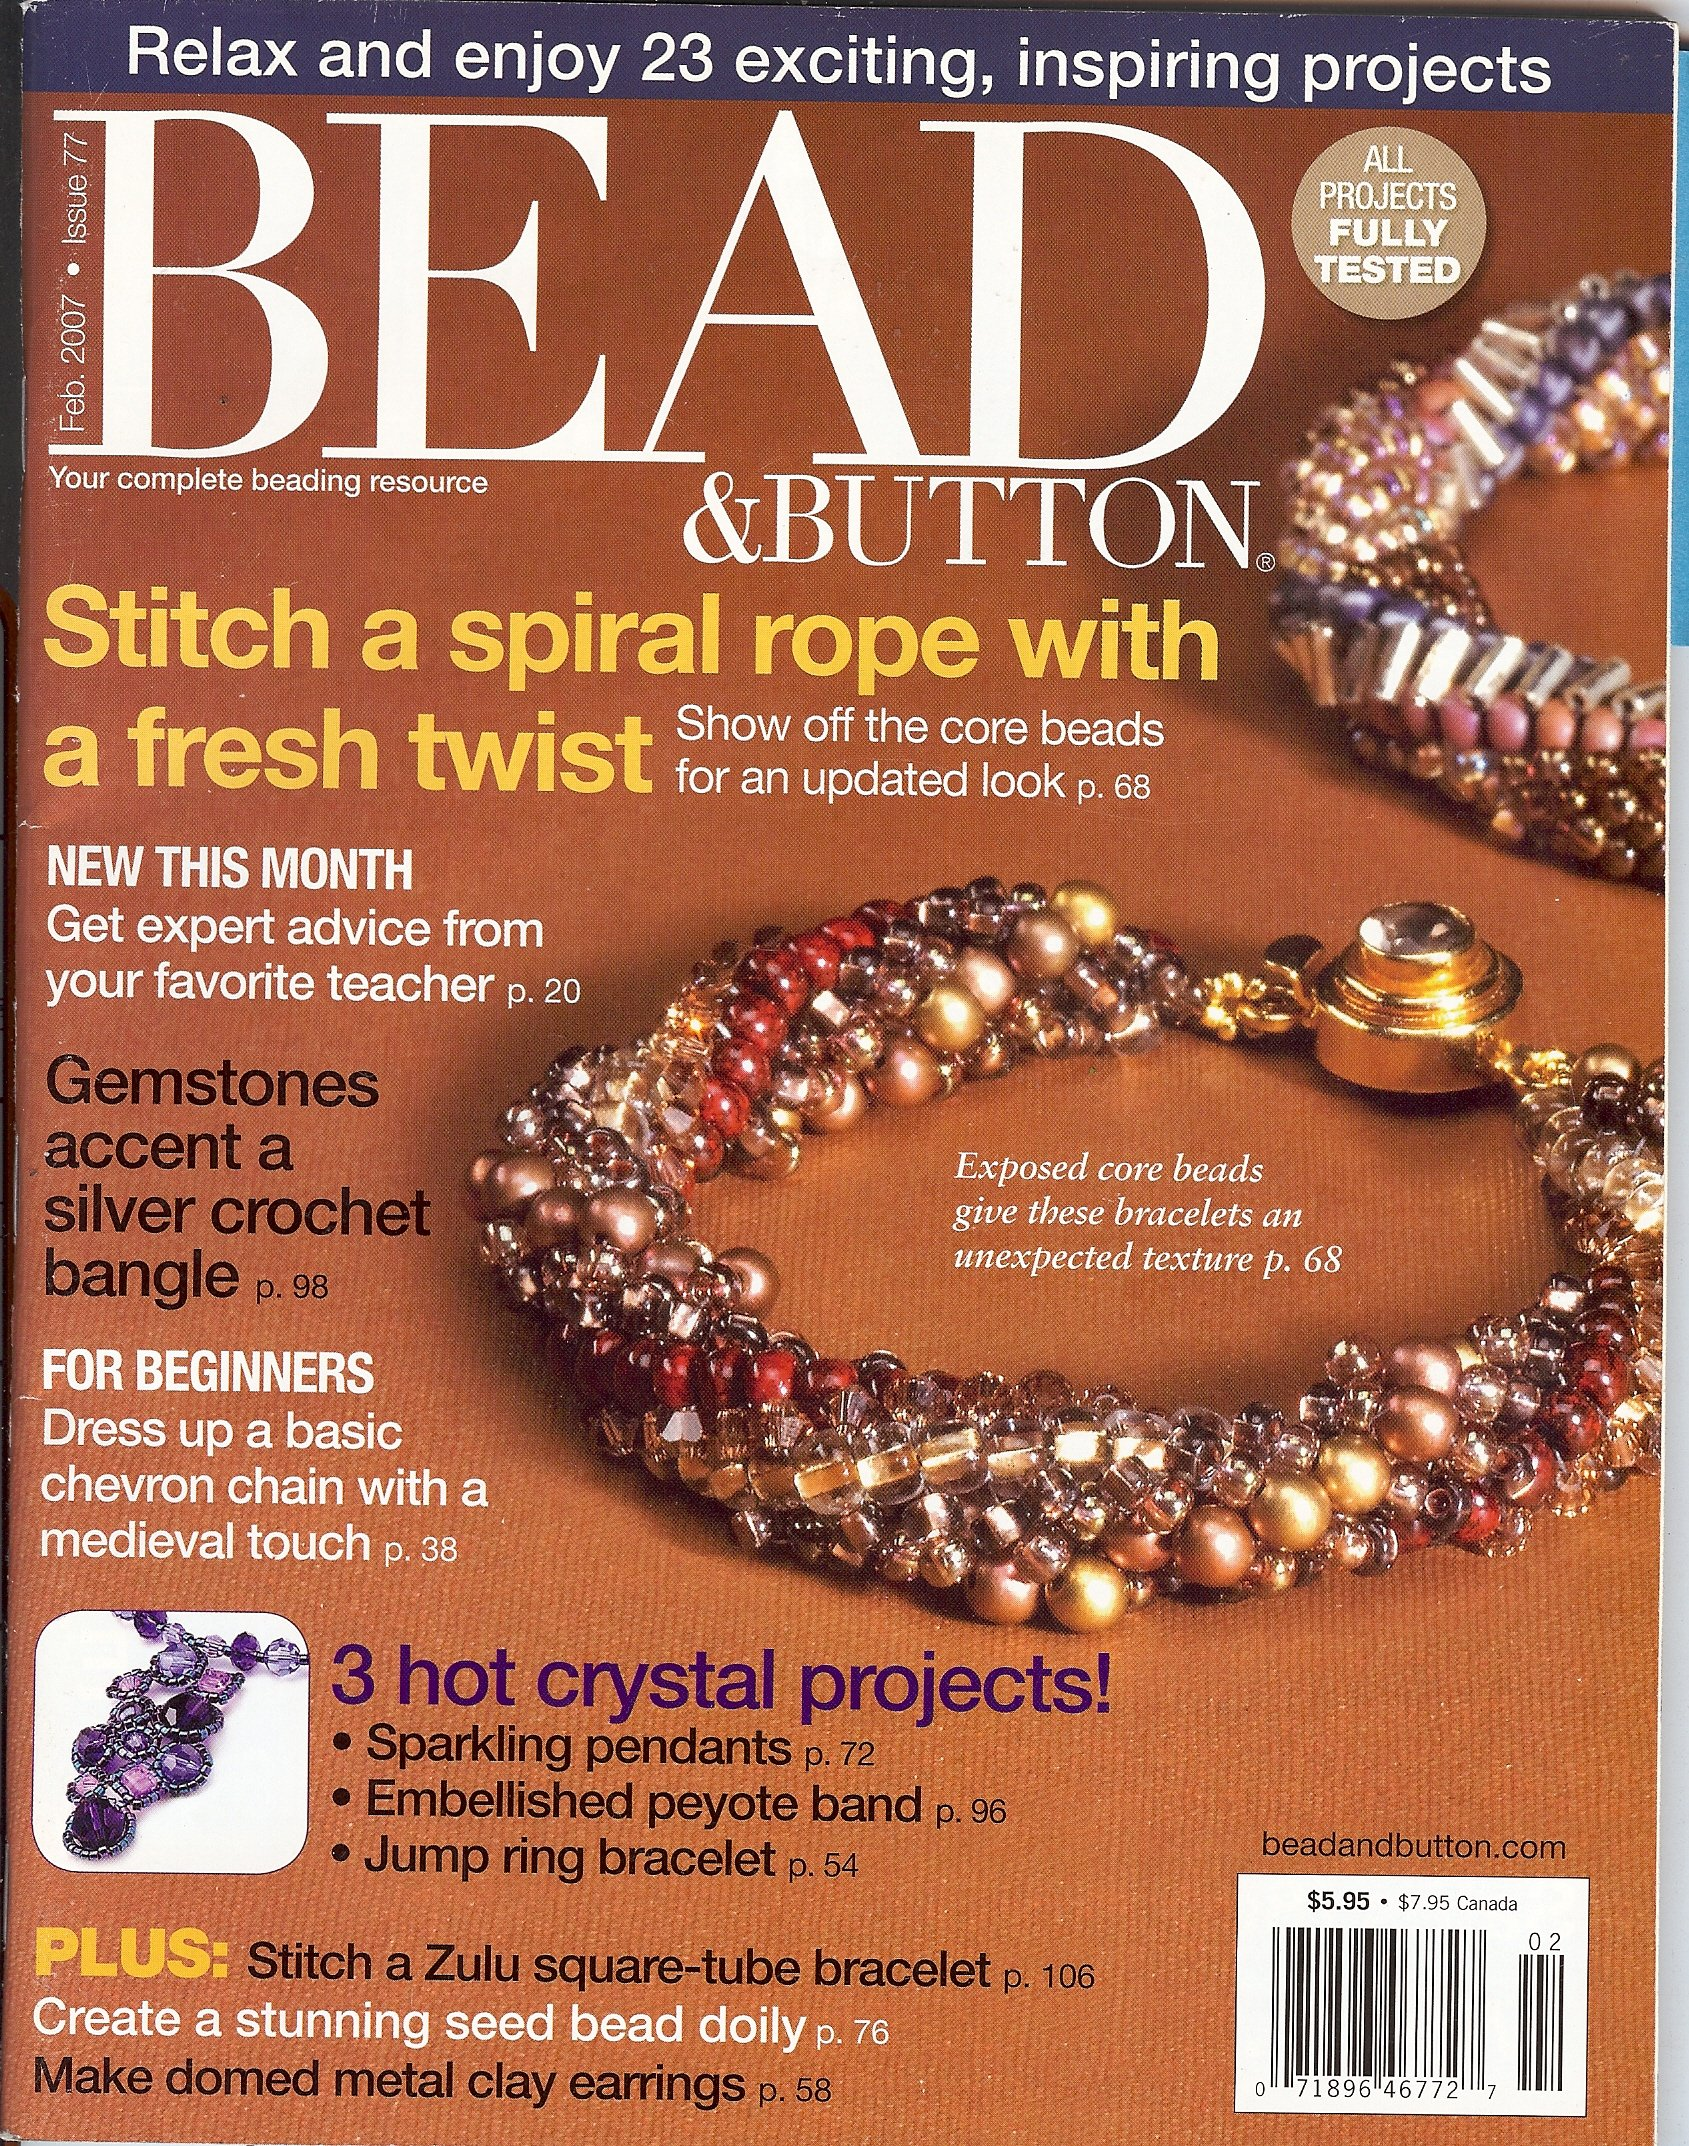 BEAD & BUTTON magazine February 2007 (Your complete beading resource, Issue 77, core beads, gemstones accent a silver crochet bangle, crystal projects, stitch a Zulu square-tube bracelet) pdf